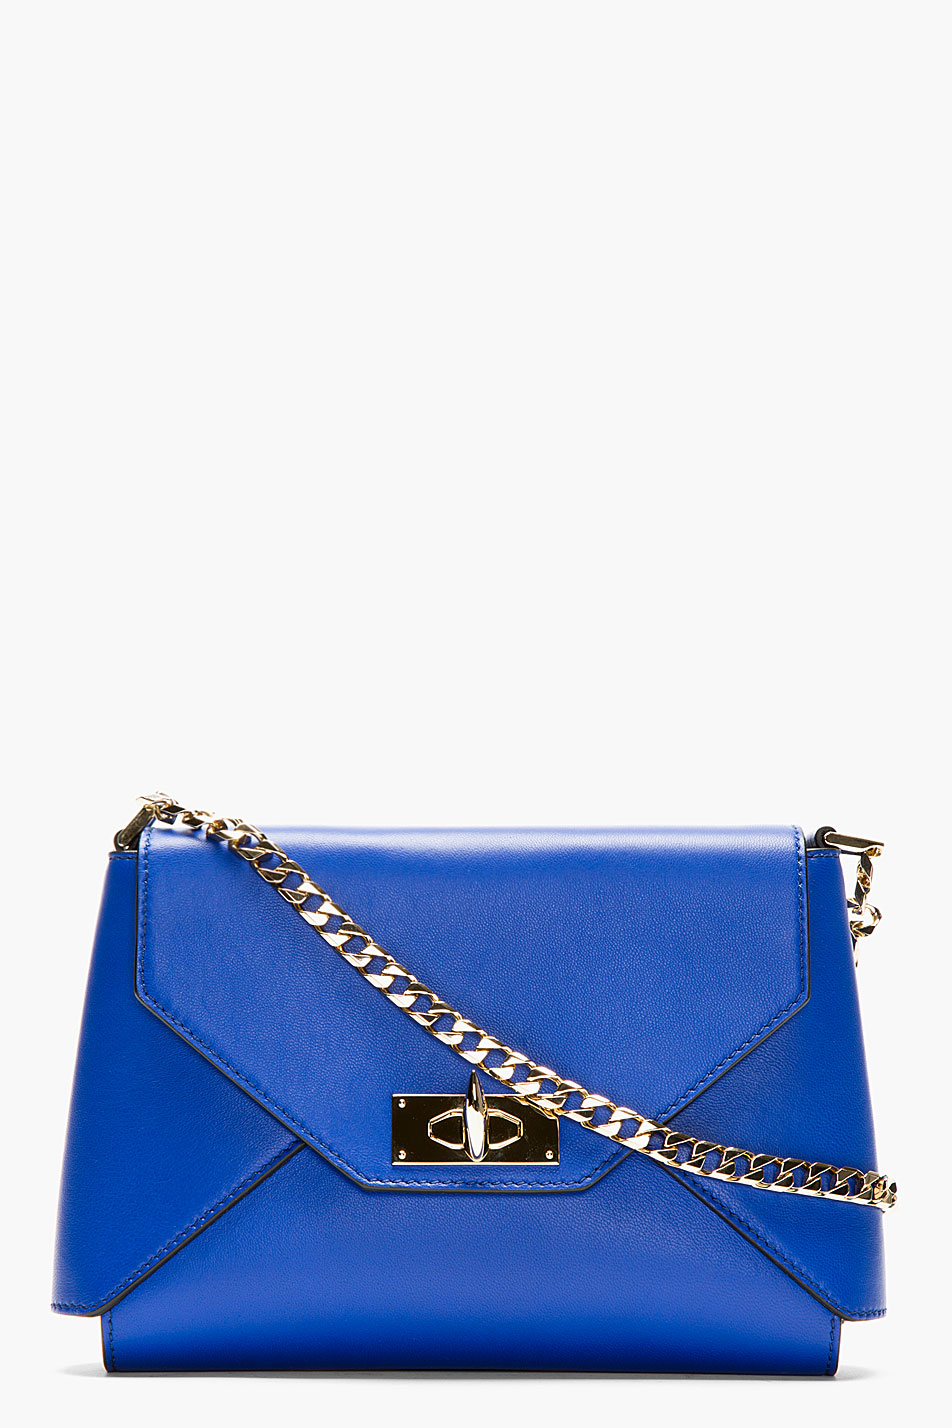 Givenchy Royal Blue Leather Shark Lock Envelope Shoulder Bag in Blue